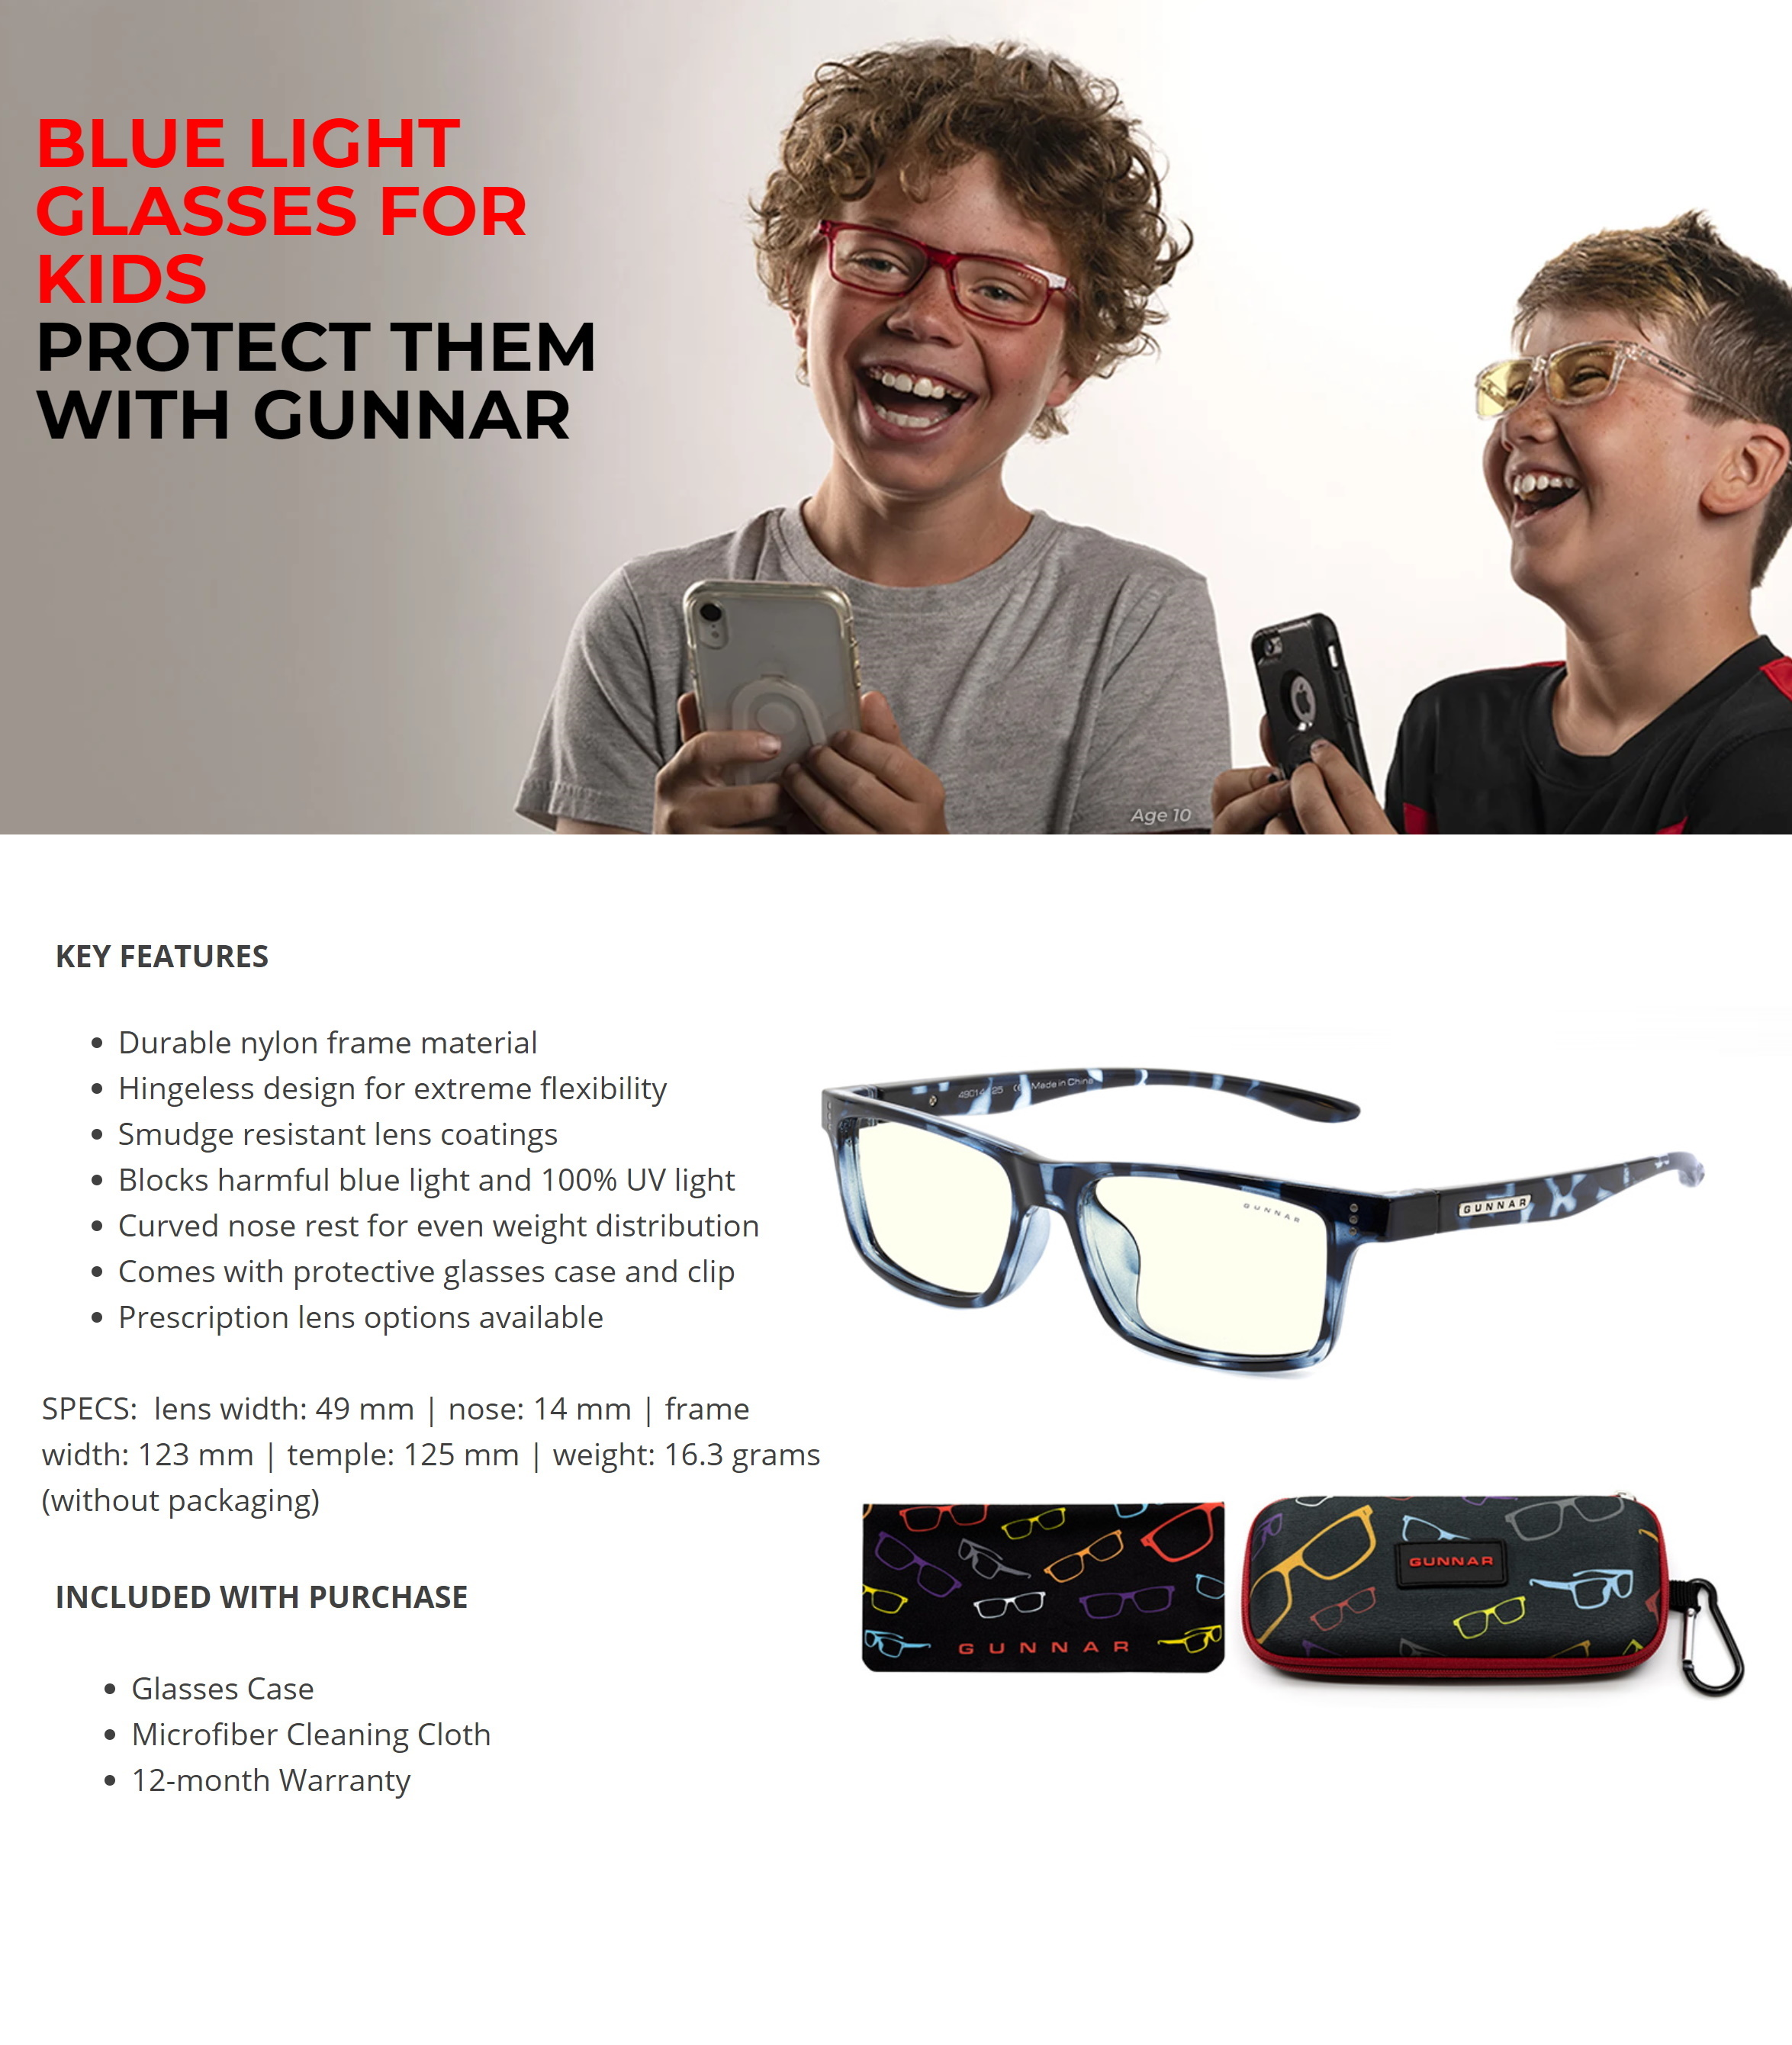 A large marketing image providing additional information about the product Gunnar Cruz Kids Clear Navy Tortoise Indoor Digital Eyewear Large - Additional alt info not provided